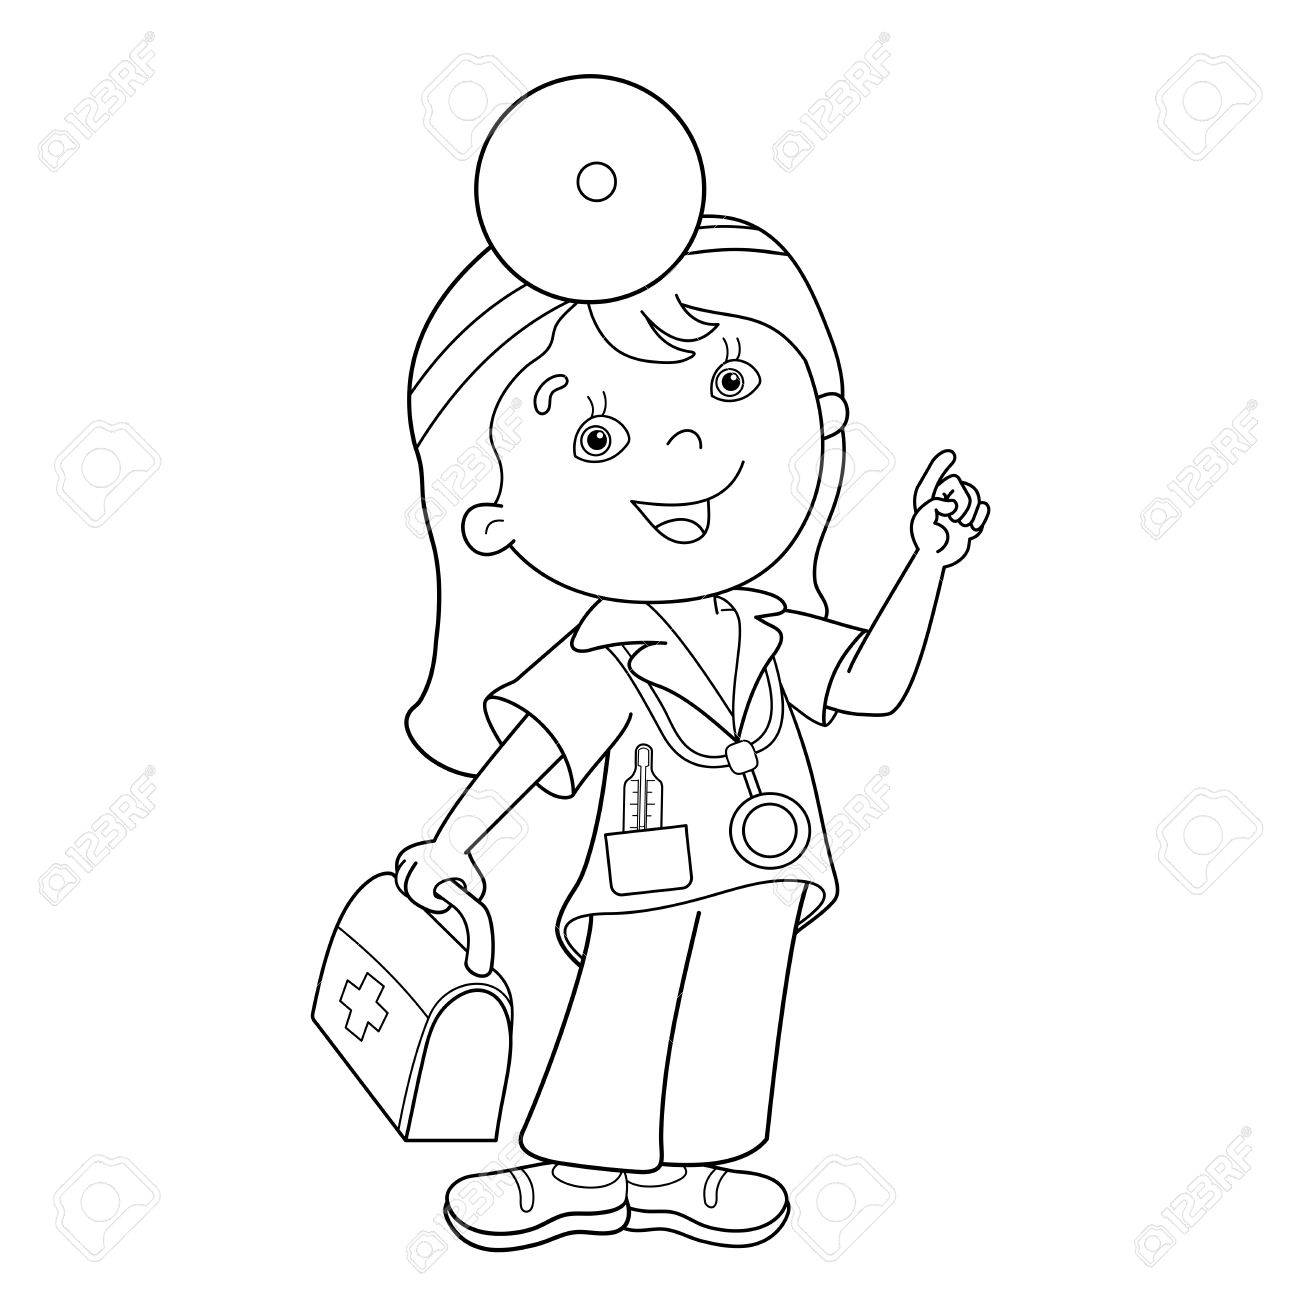 Nurse Checking Medical Kit Thermometer Coloring Page : Coloring ... | 1300x1300